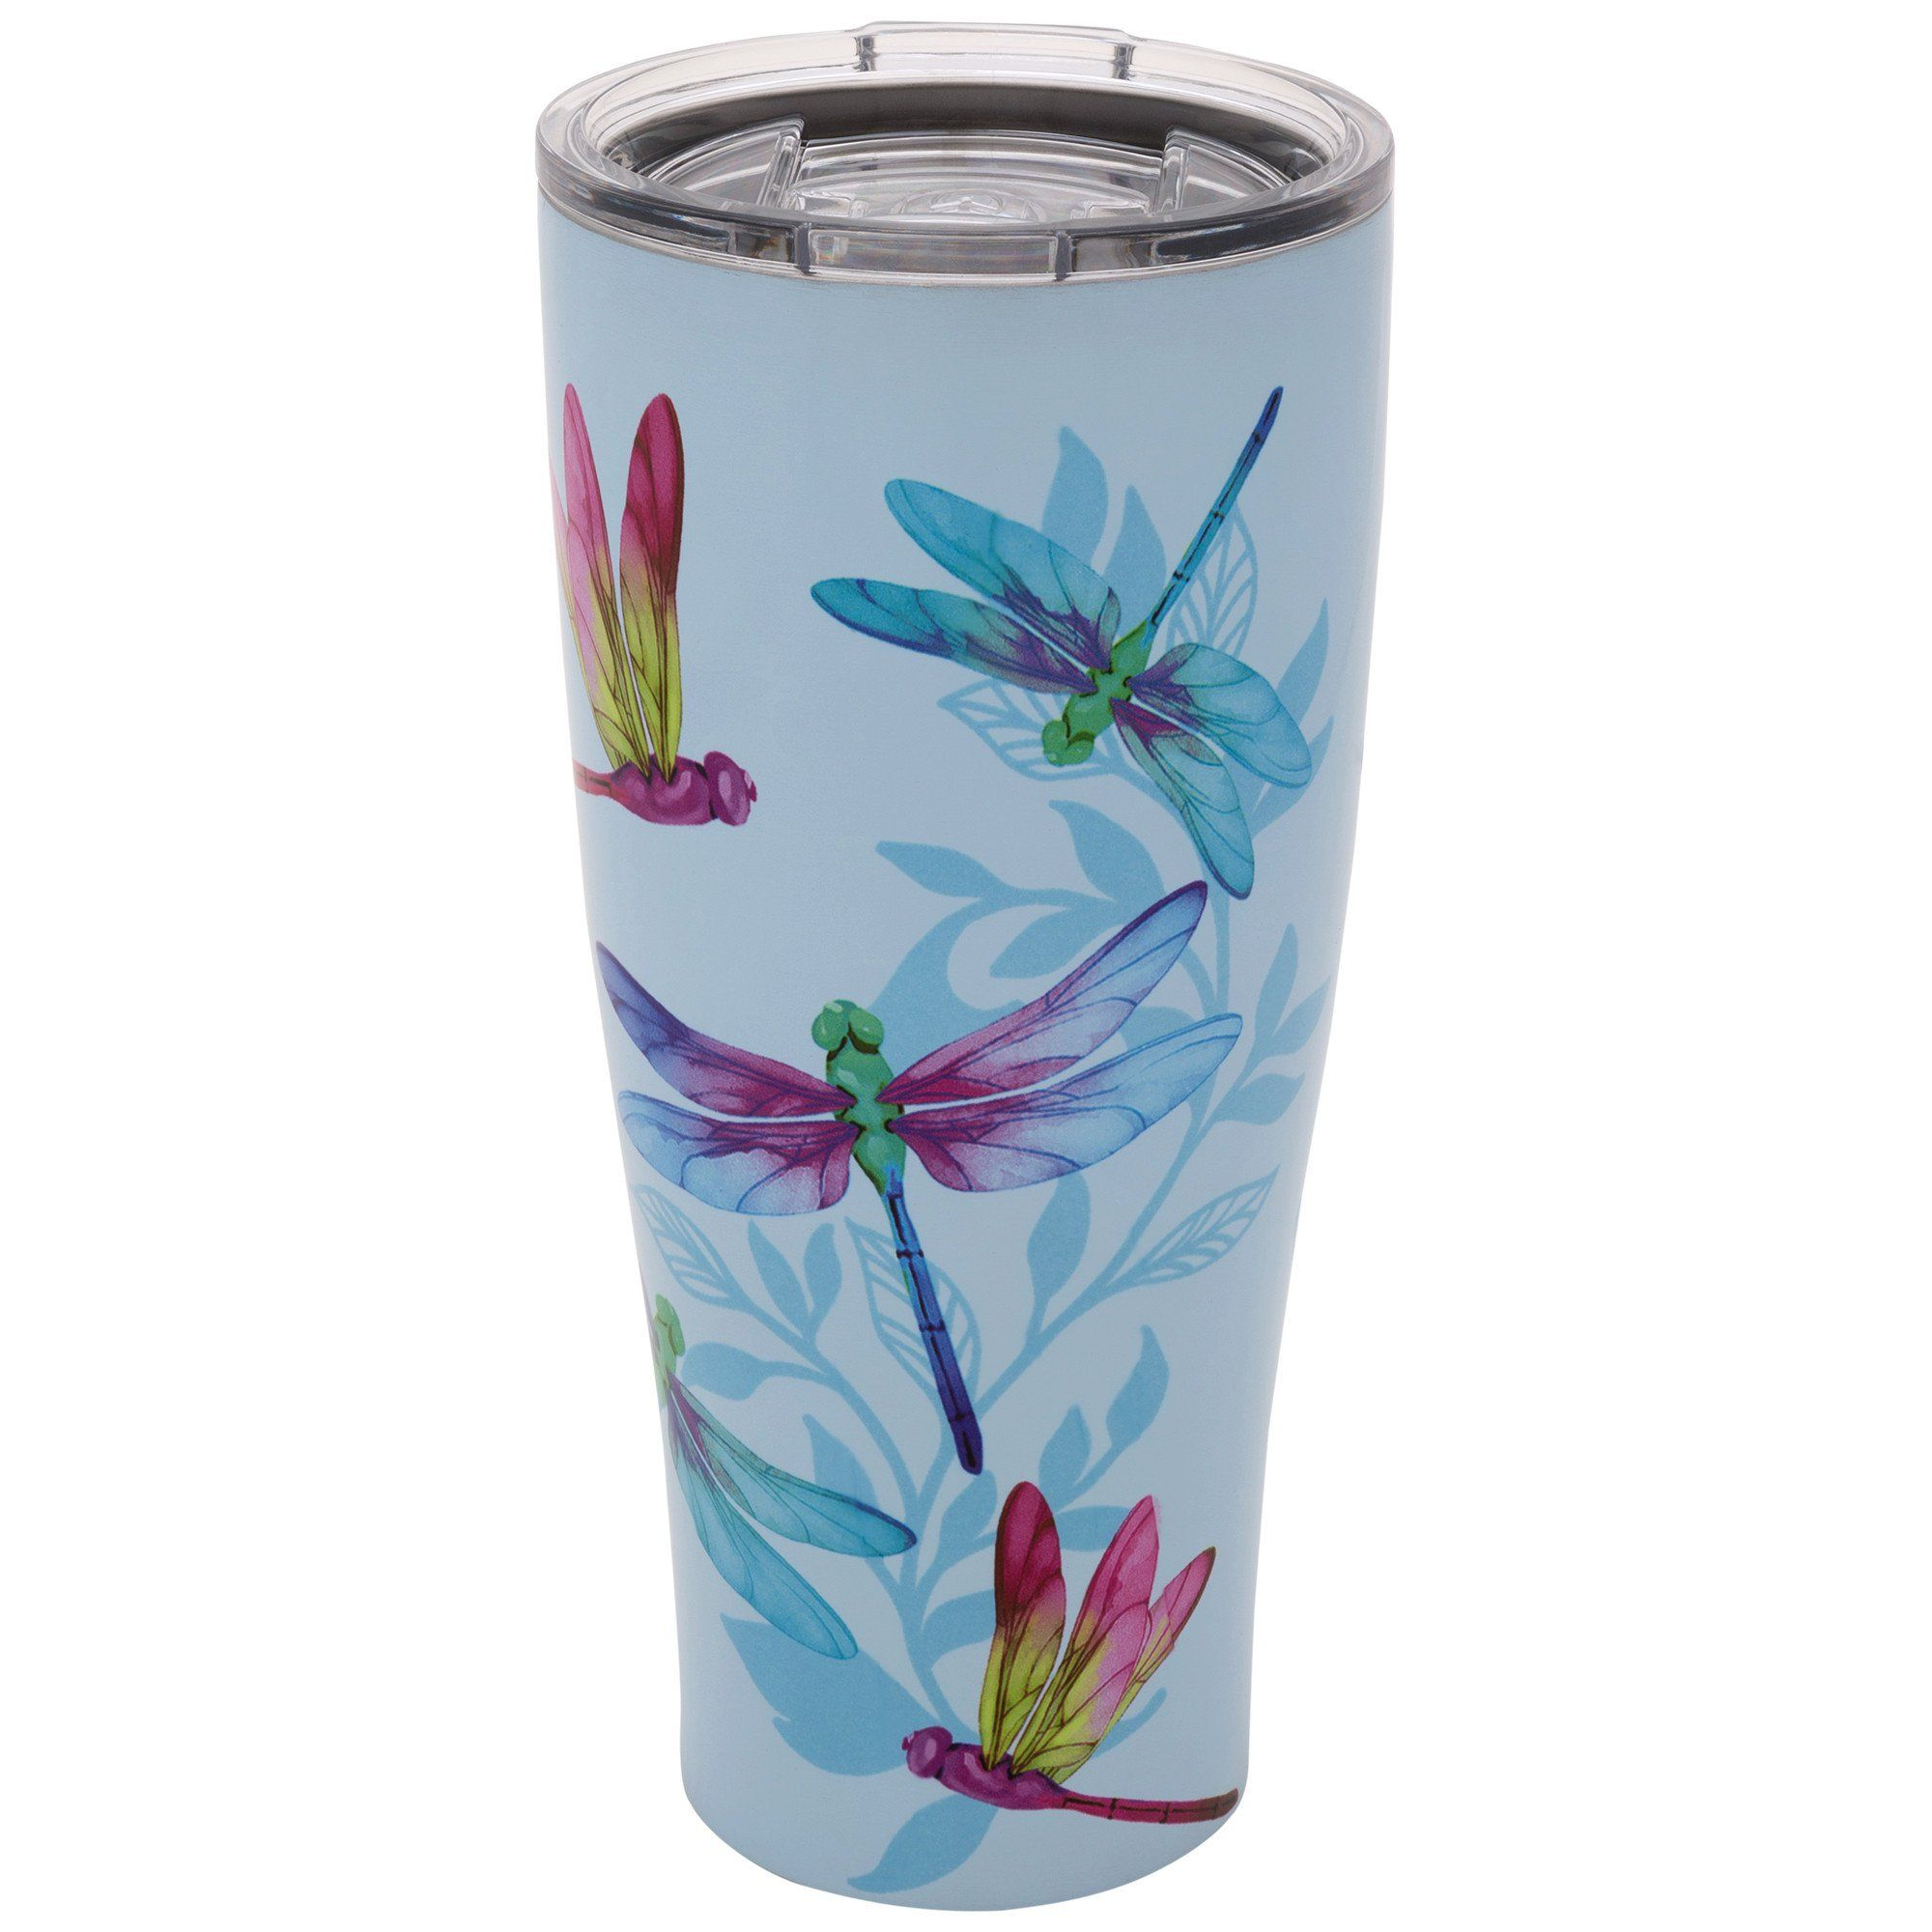 dragonfly dreams stainless steel travel mug greatergood